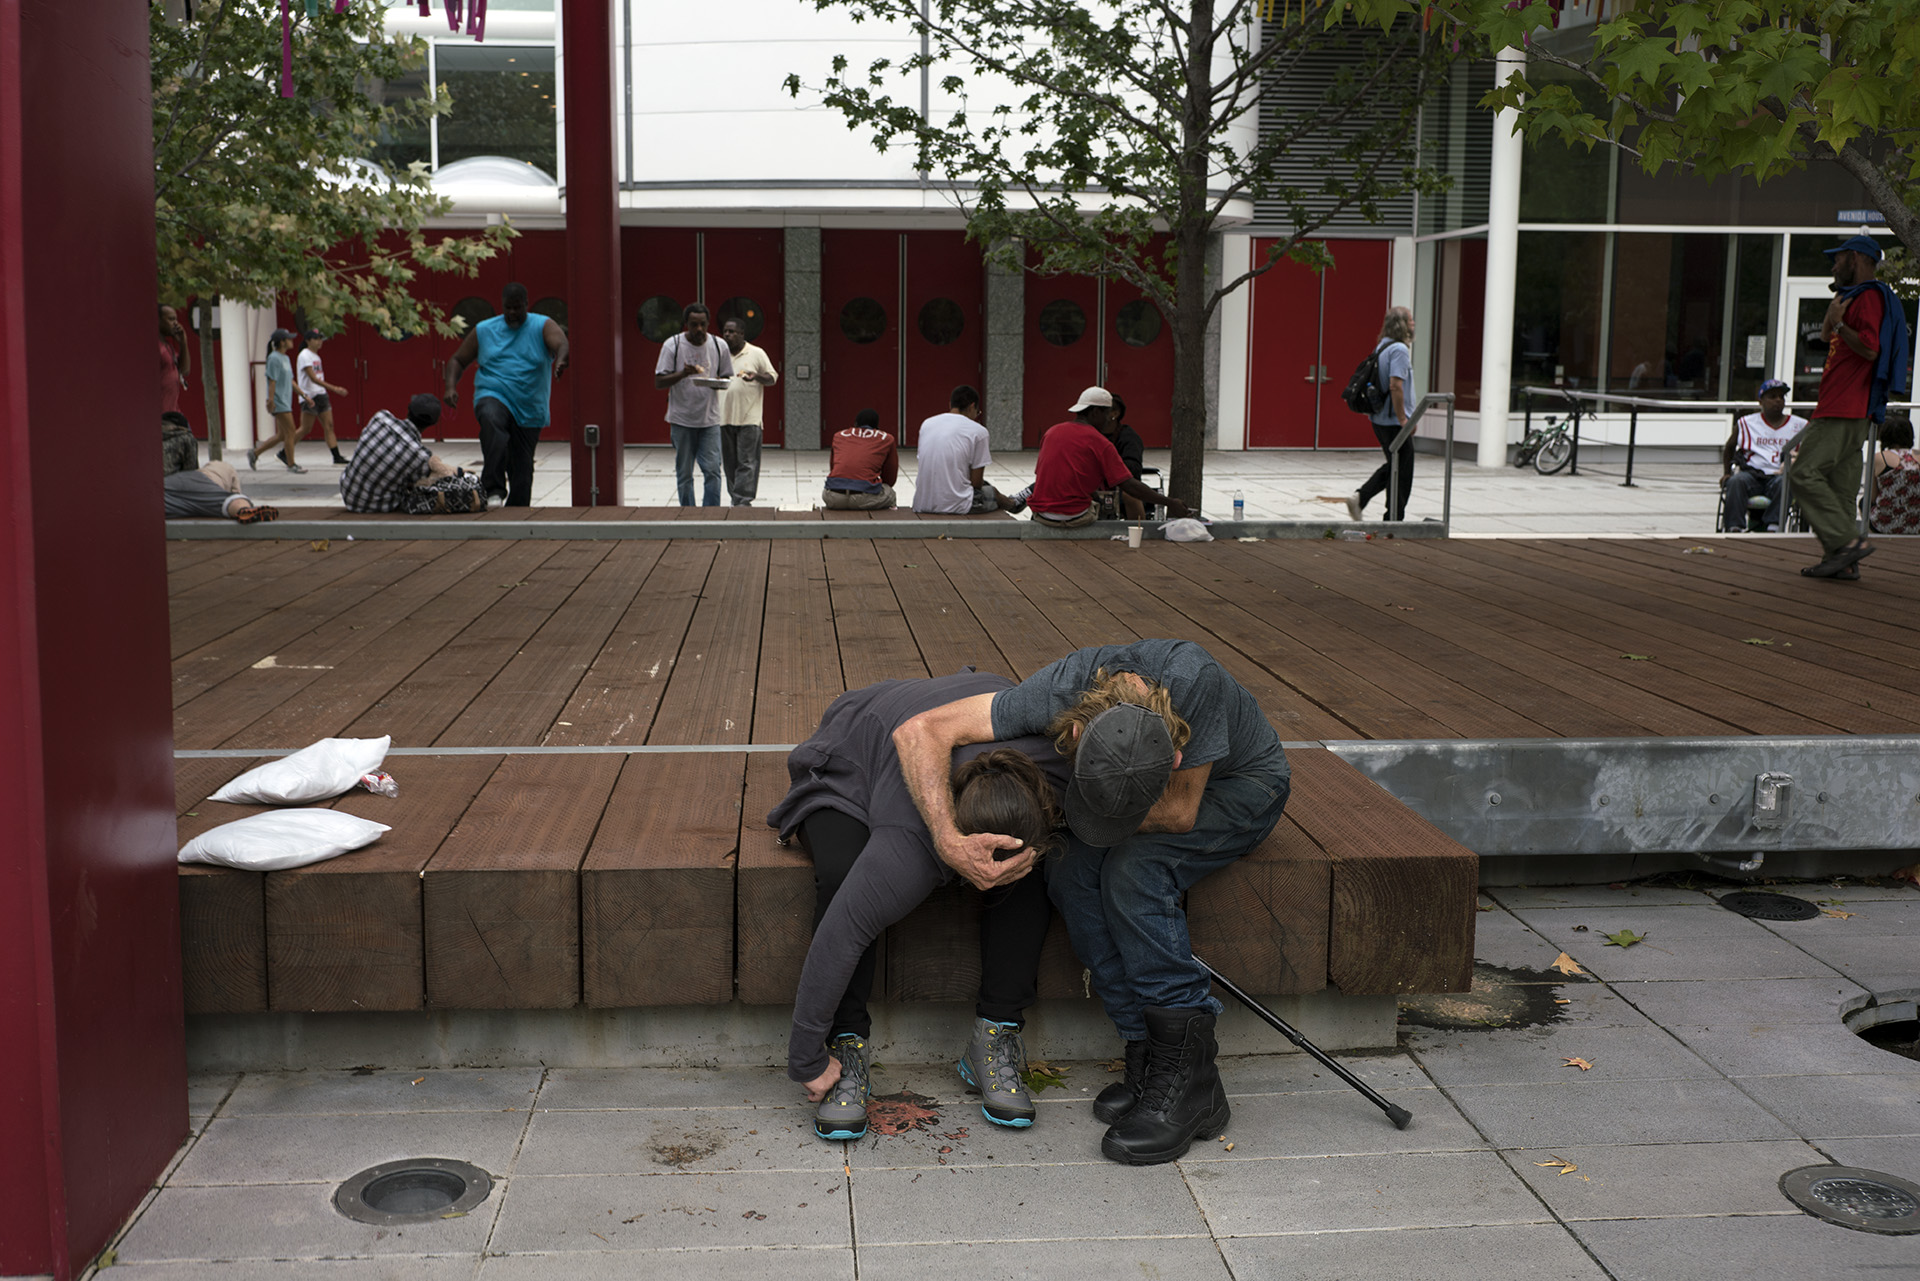 Evacuees outside of the convention center. Many addicts were outside the center coming down off of their addictions and had vomited on the sidewalks. When a disaster such as Harvey happens the underlying needs of society are laid bare and take an additional toll on how to respond to the many requirements that people have to survive.